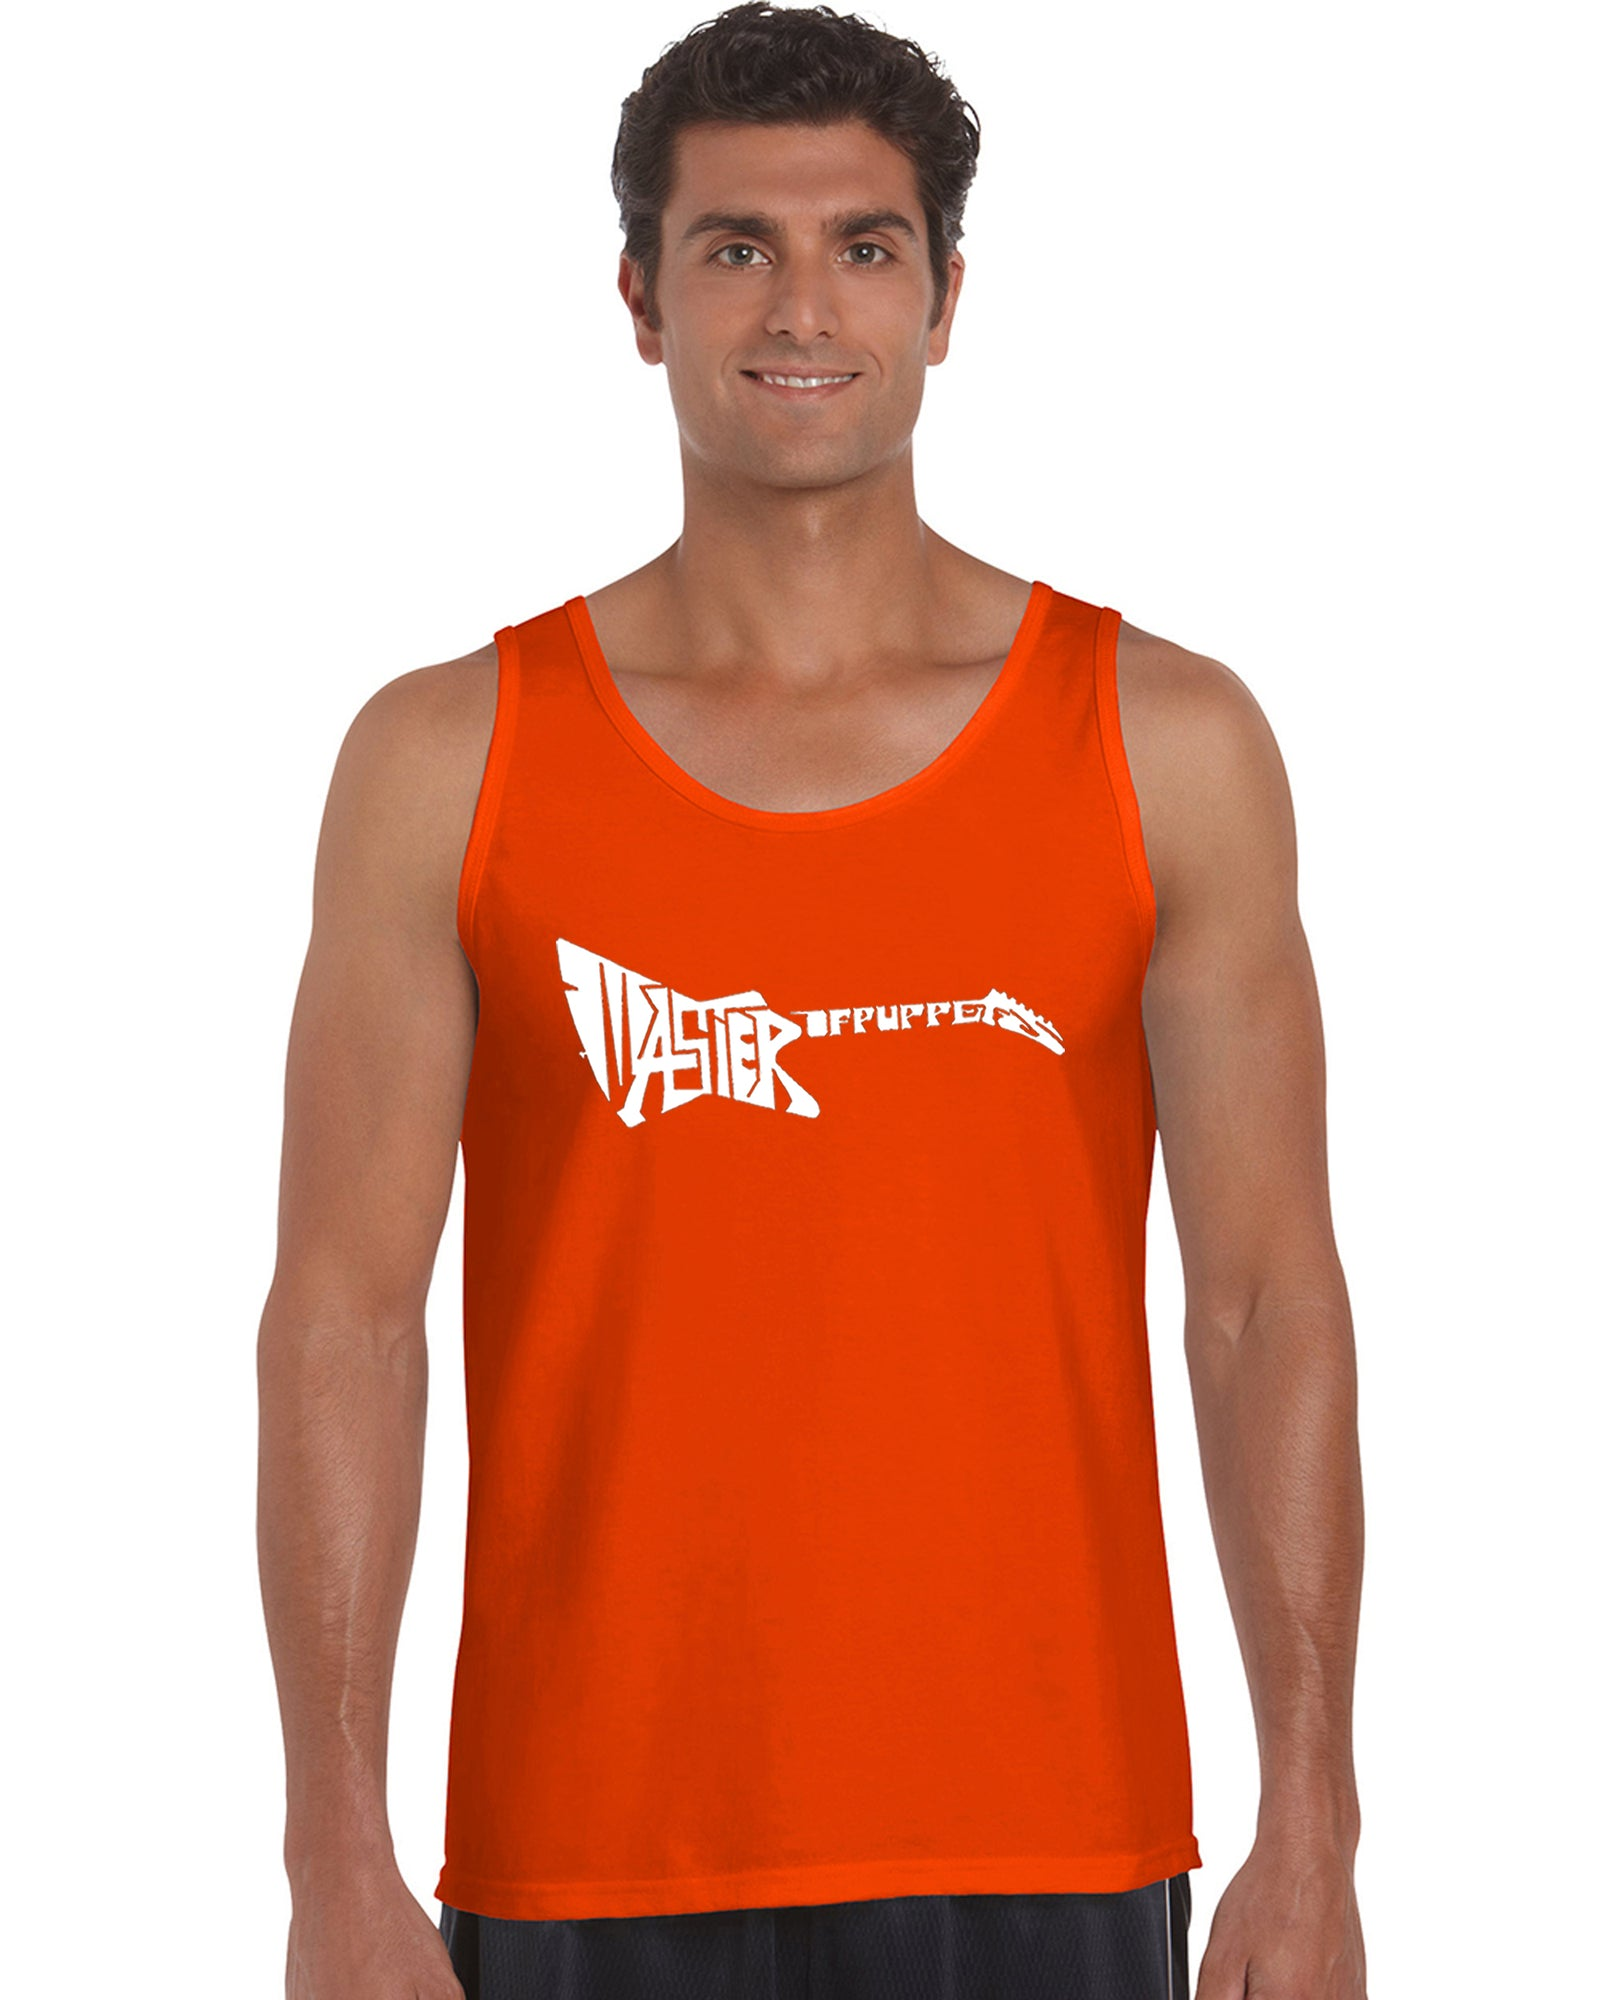 Mens Tank Top  - Master of Puppets